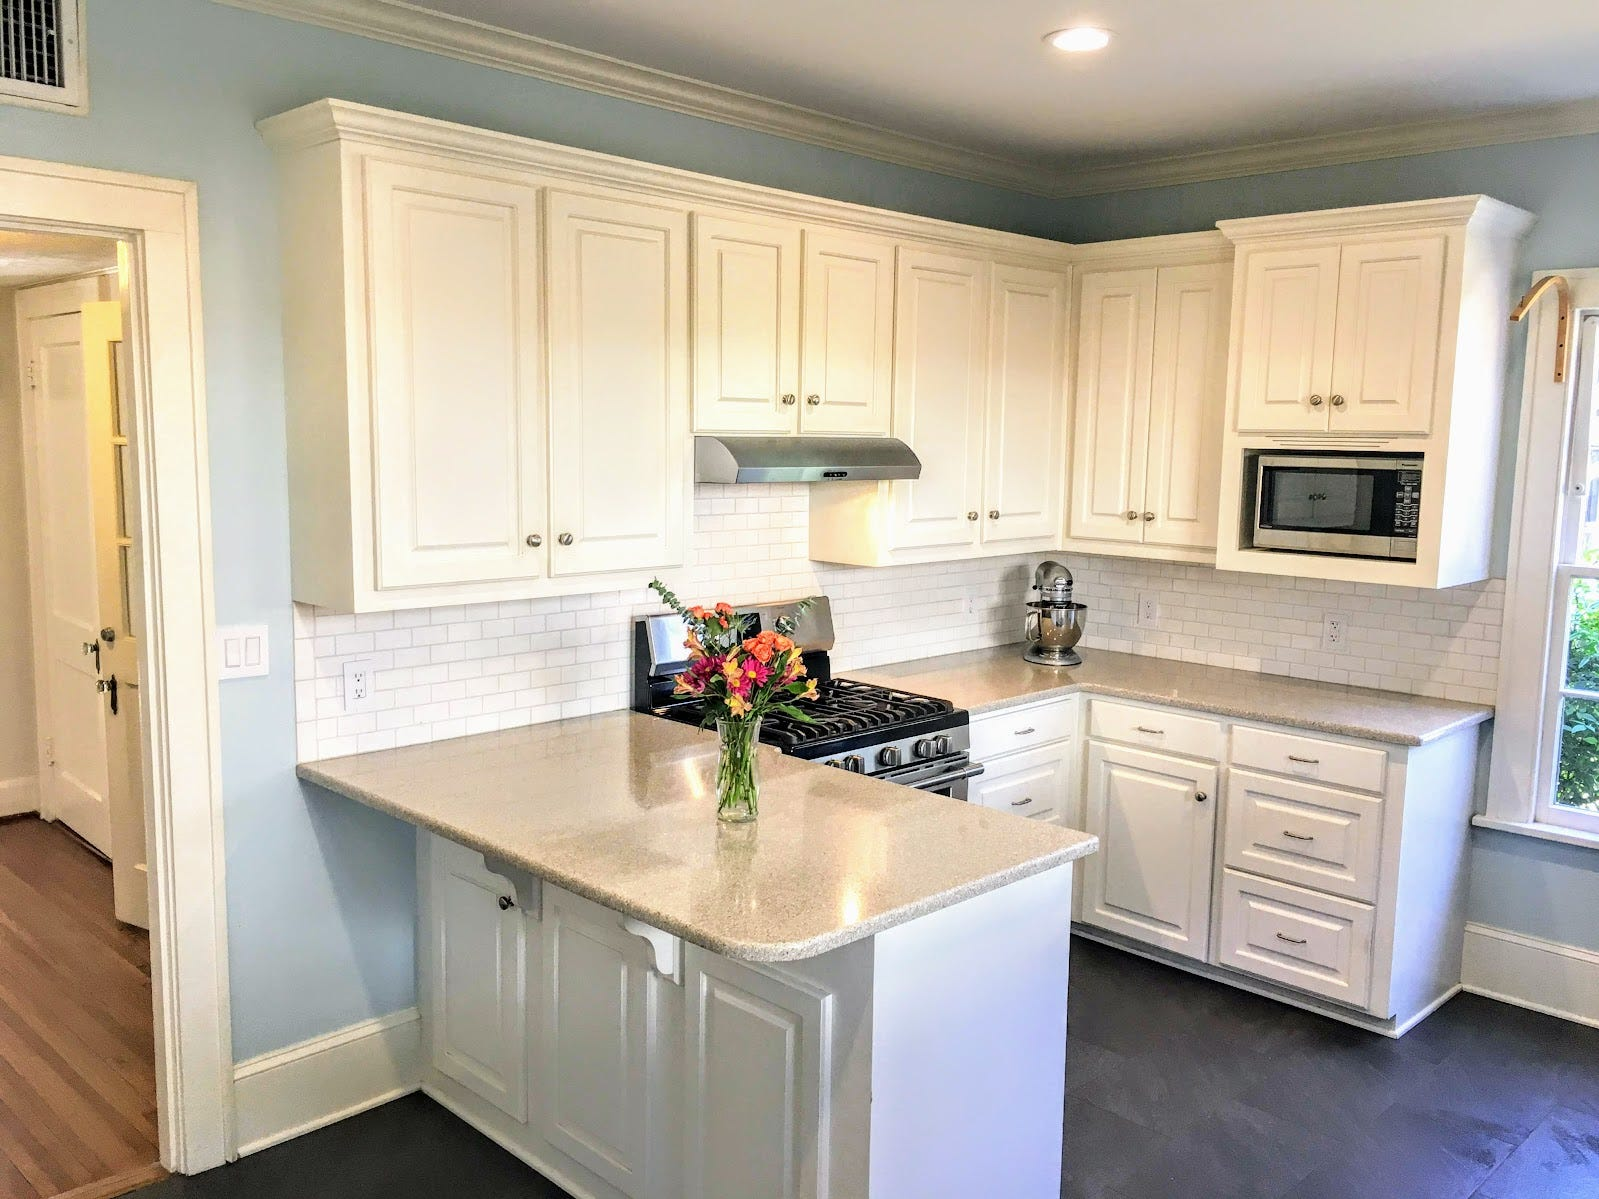 3890 Fairfield Avenue, Shreveport  Price: $299,500  Details: 3 bedrooms, 3 bathrooms, 2,685 square feet  Featuring: 1920's historic South Highland home overlooking Betty Virginia park, new roof, updated kitchen and master bath in 2016, fresh interior and exterior paint, new HVAC system, 900 square ft. studio garage apartment, sunroom with built-ins, mother-in-law apartment with clawfoot tub.   Call Katherine Pearson (401) 368-5663